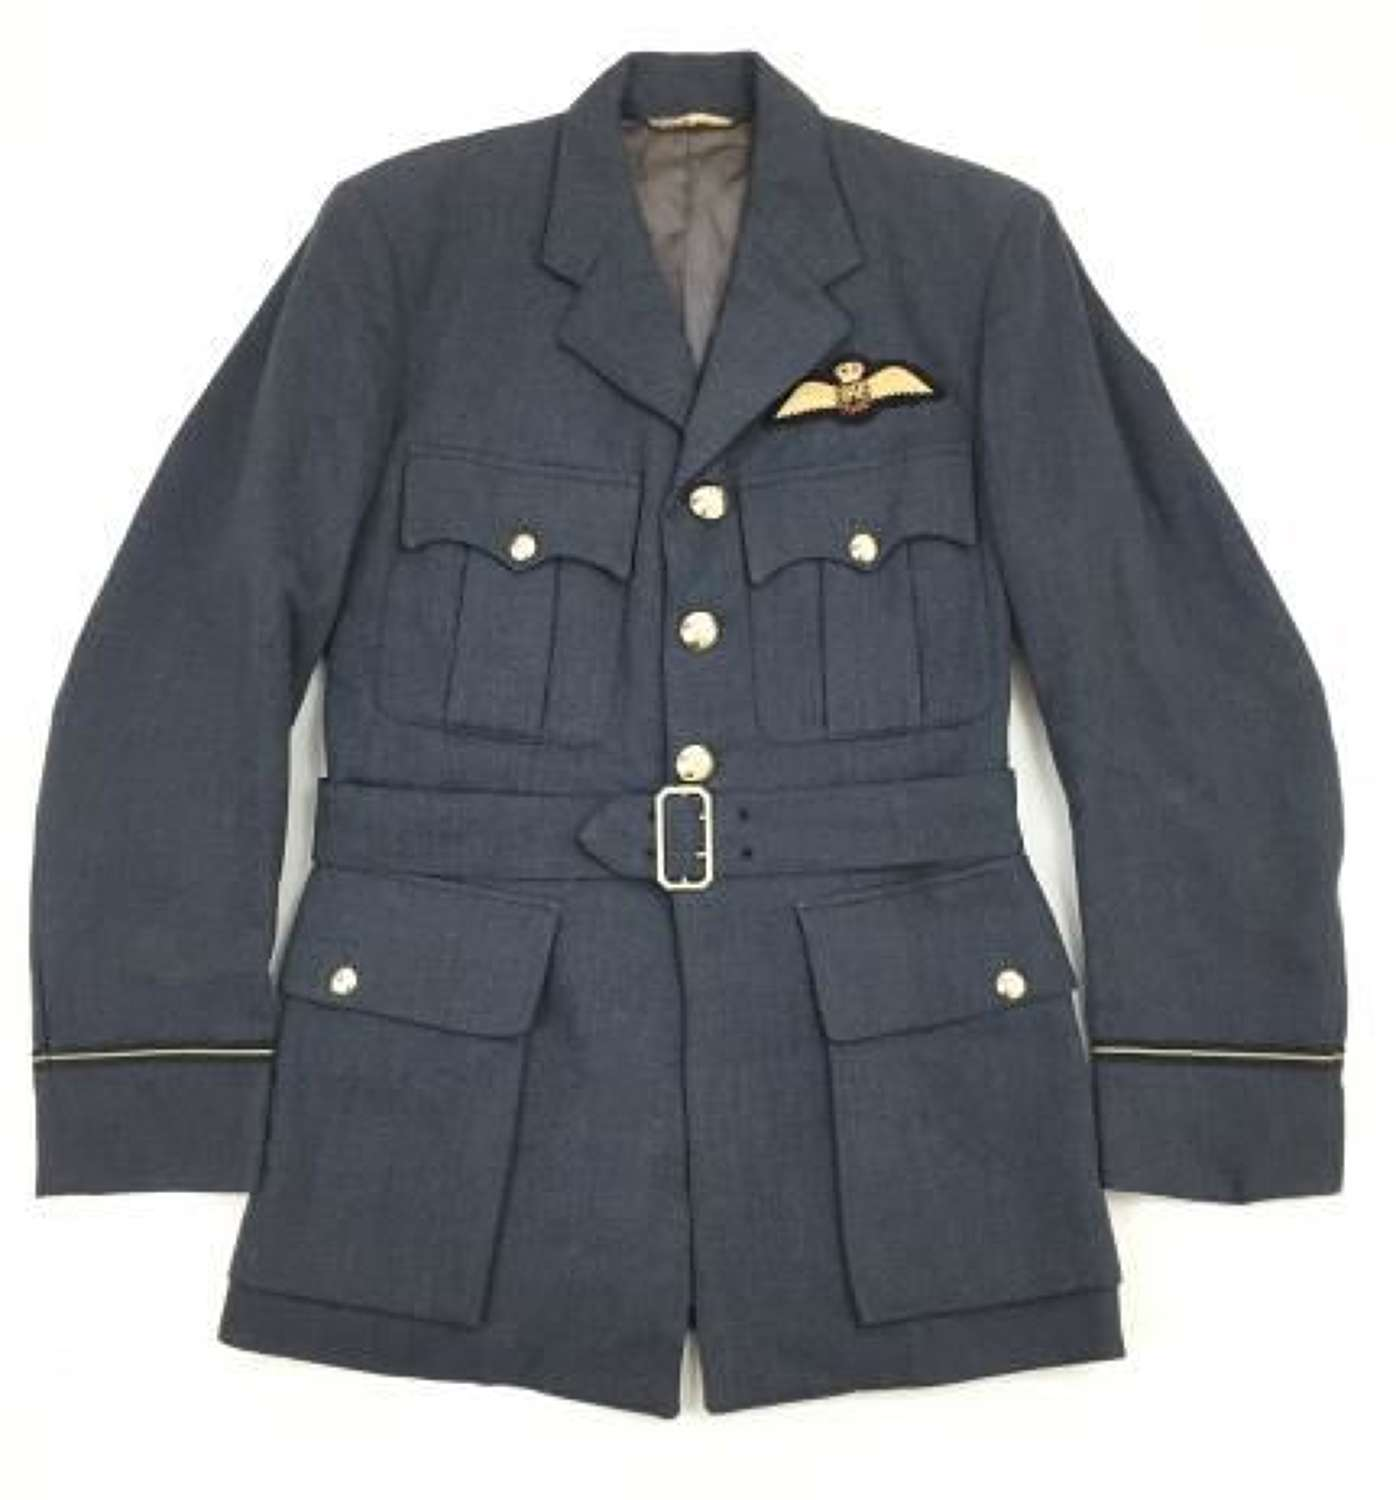 1971 Dated RAF Officers Service Dress by 'Burton'